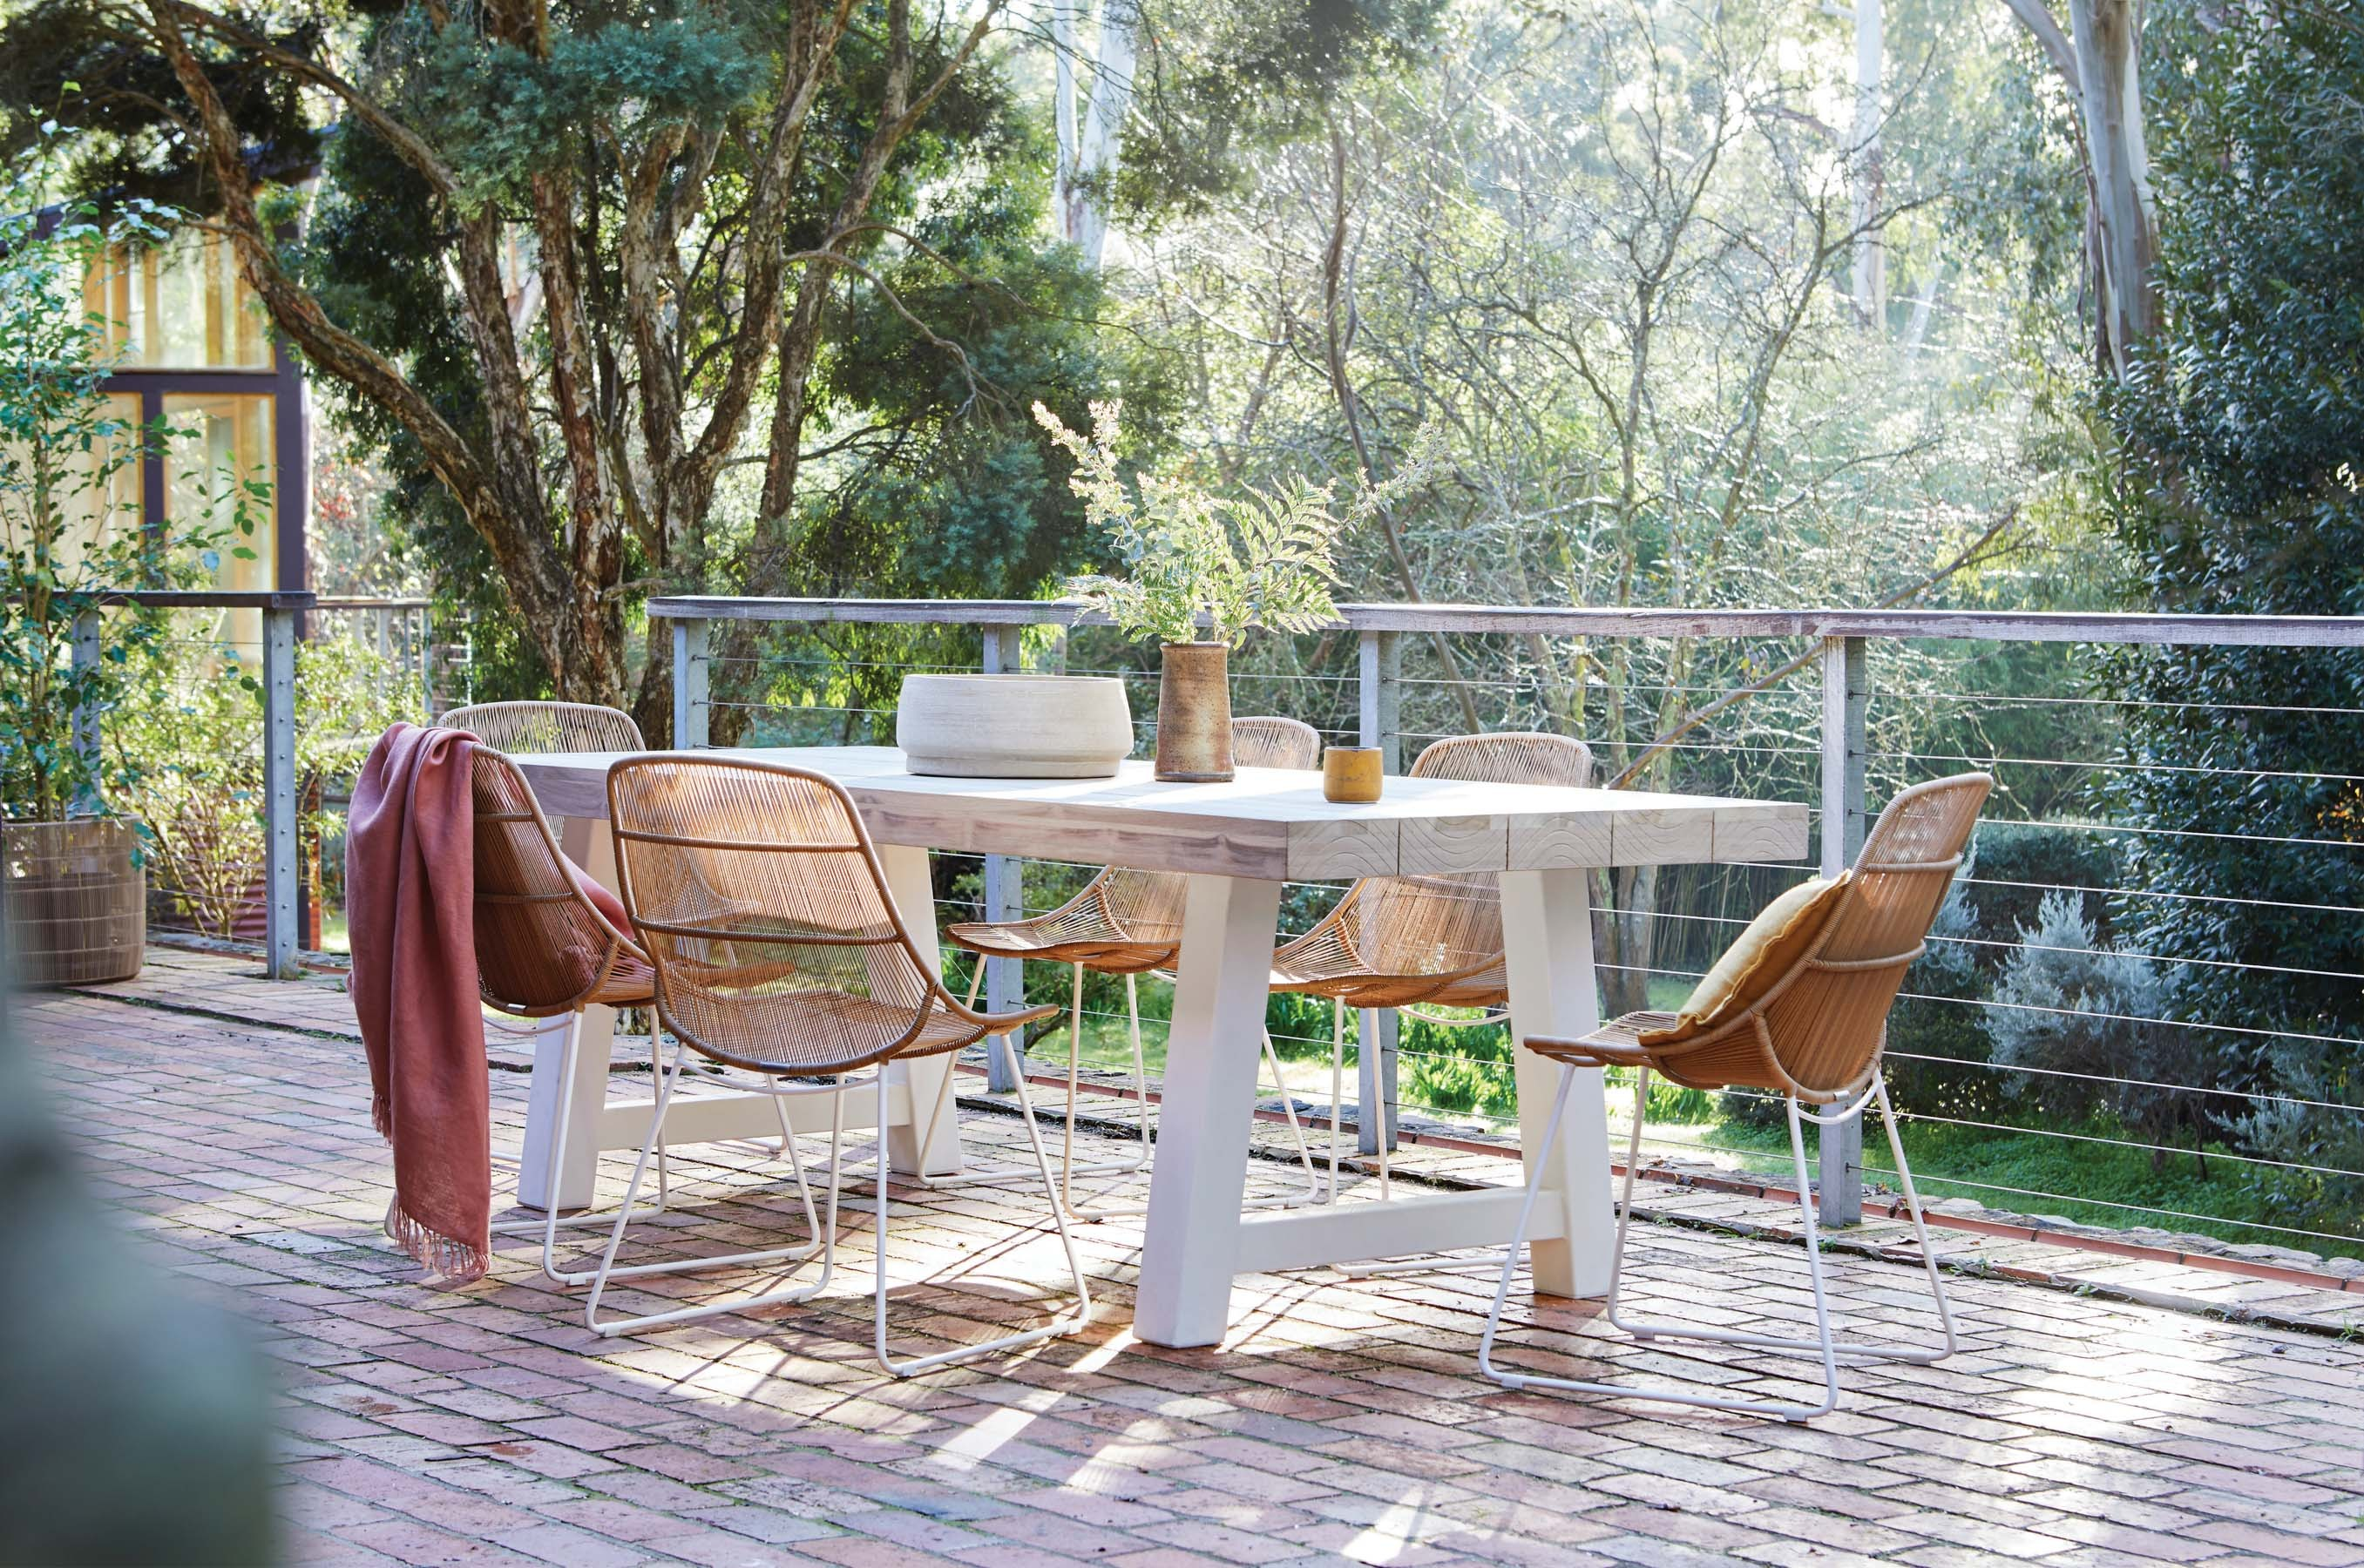 Furniture Gallery Dining-Tables granada-beach-dining-table-02